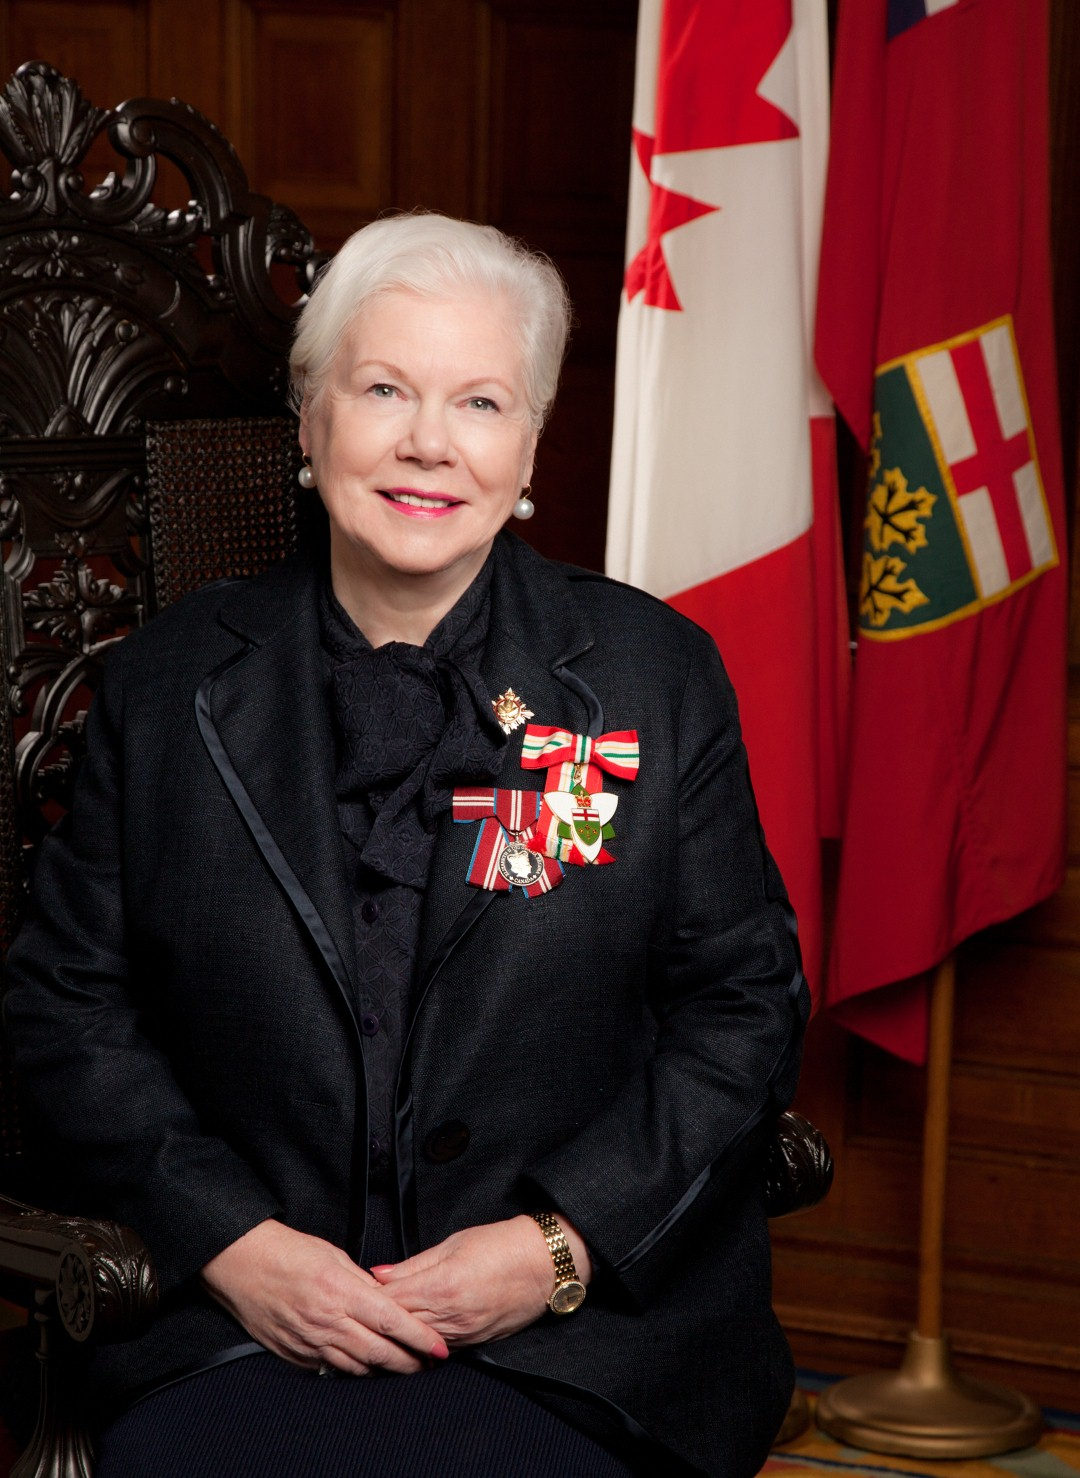 Lieutenant Governor's official photo